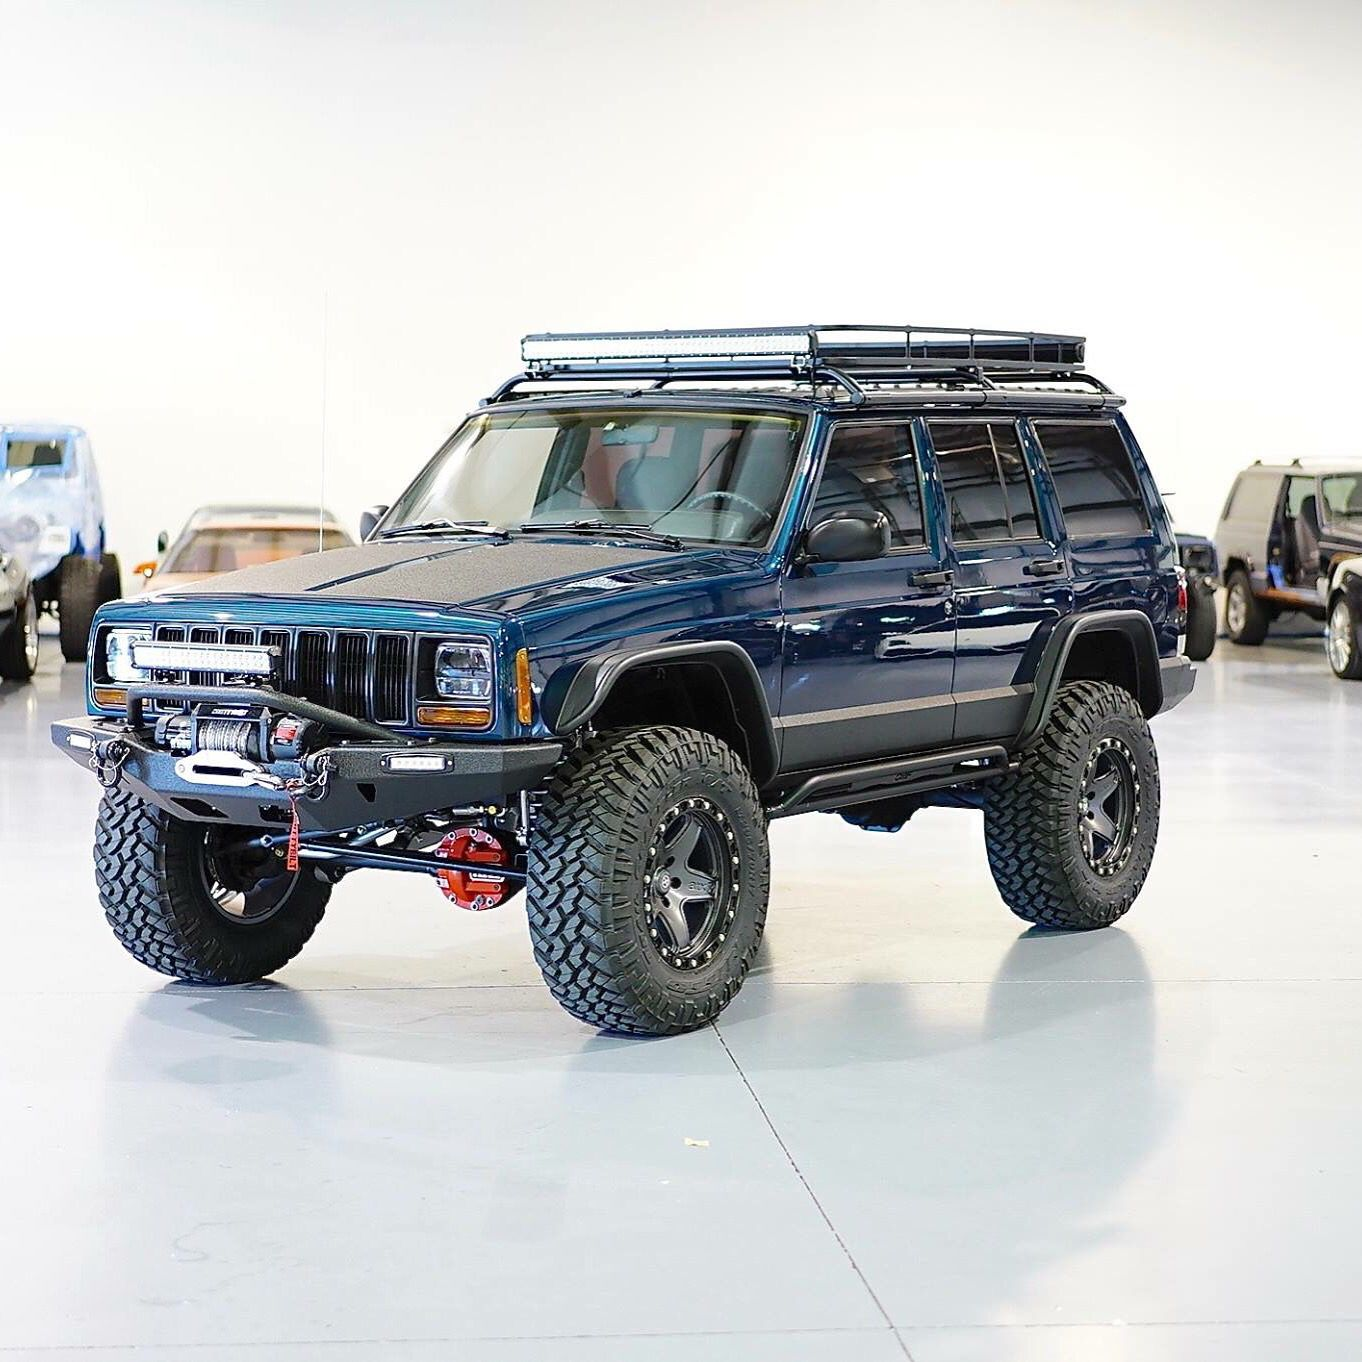 Lifted Jeep Cherokee By Davis Autosports Lifted Jeep Cherokee Jeep Cherokee Jeep Xj